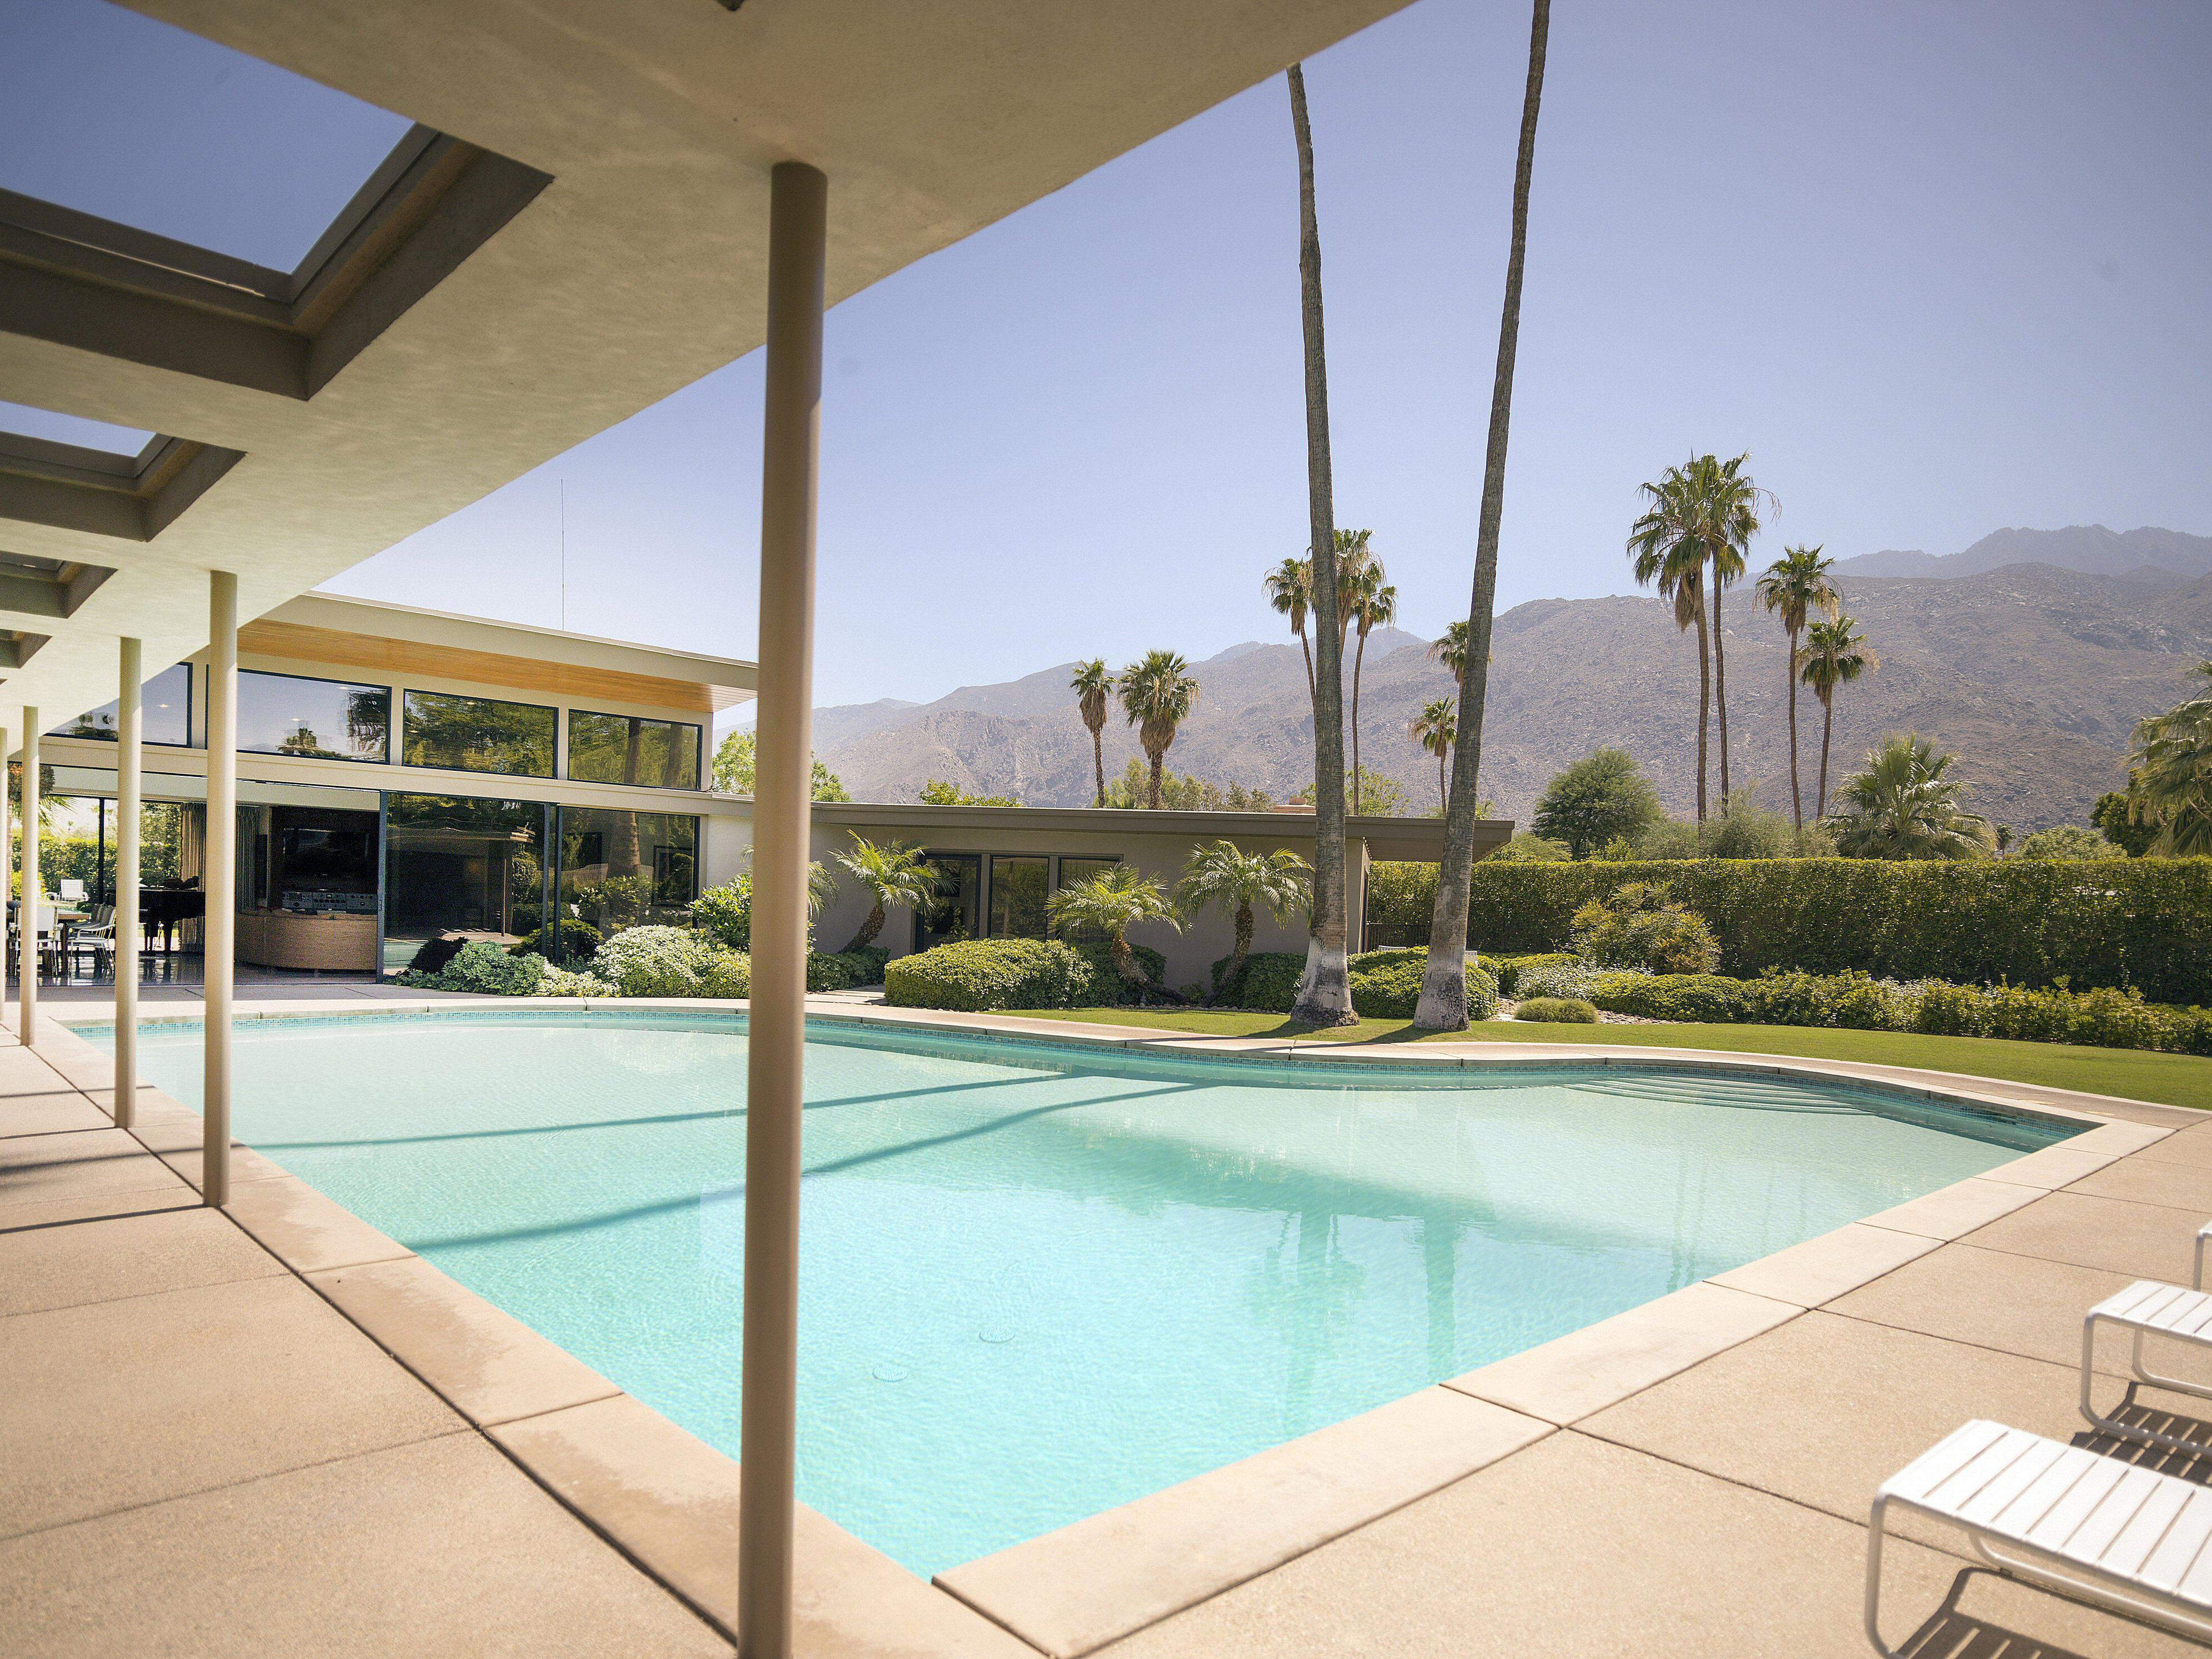 Architecture of the Rich and Famous in Palm Springs